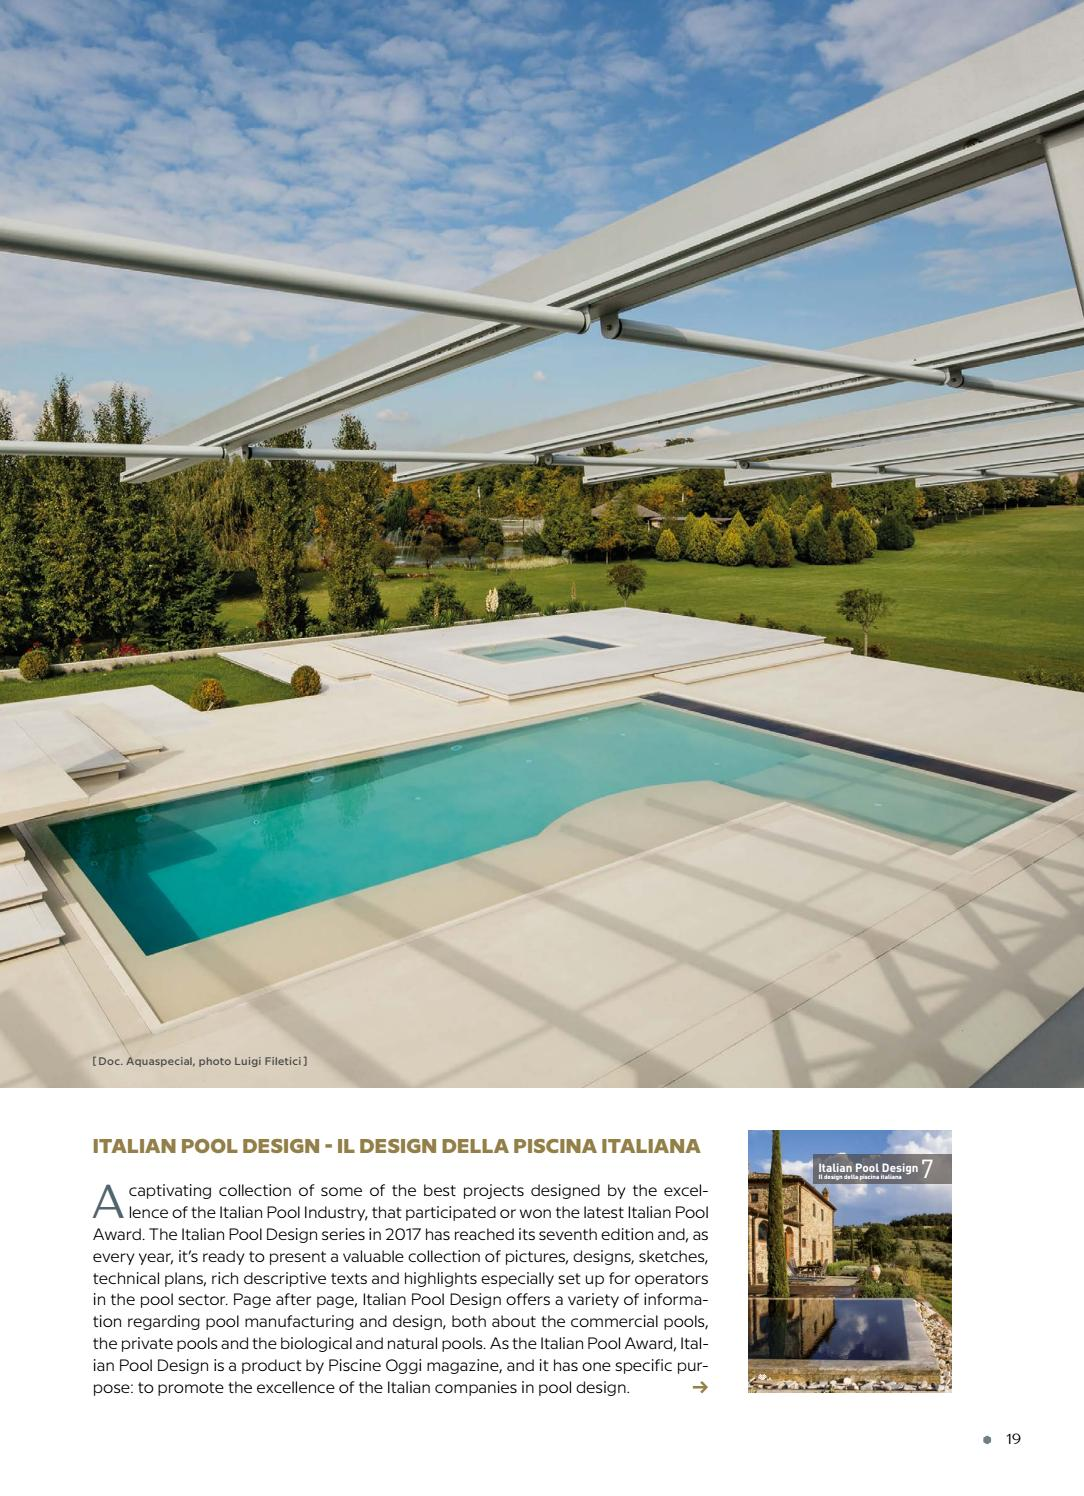 Piscina Design Italian Pool Technology 2017 2018 By Editrice Il Campo Issuu